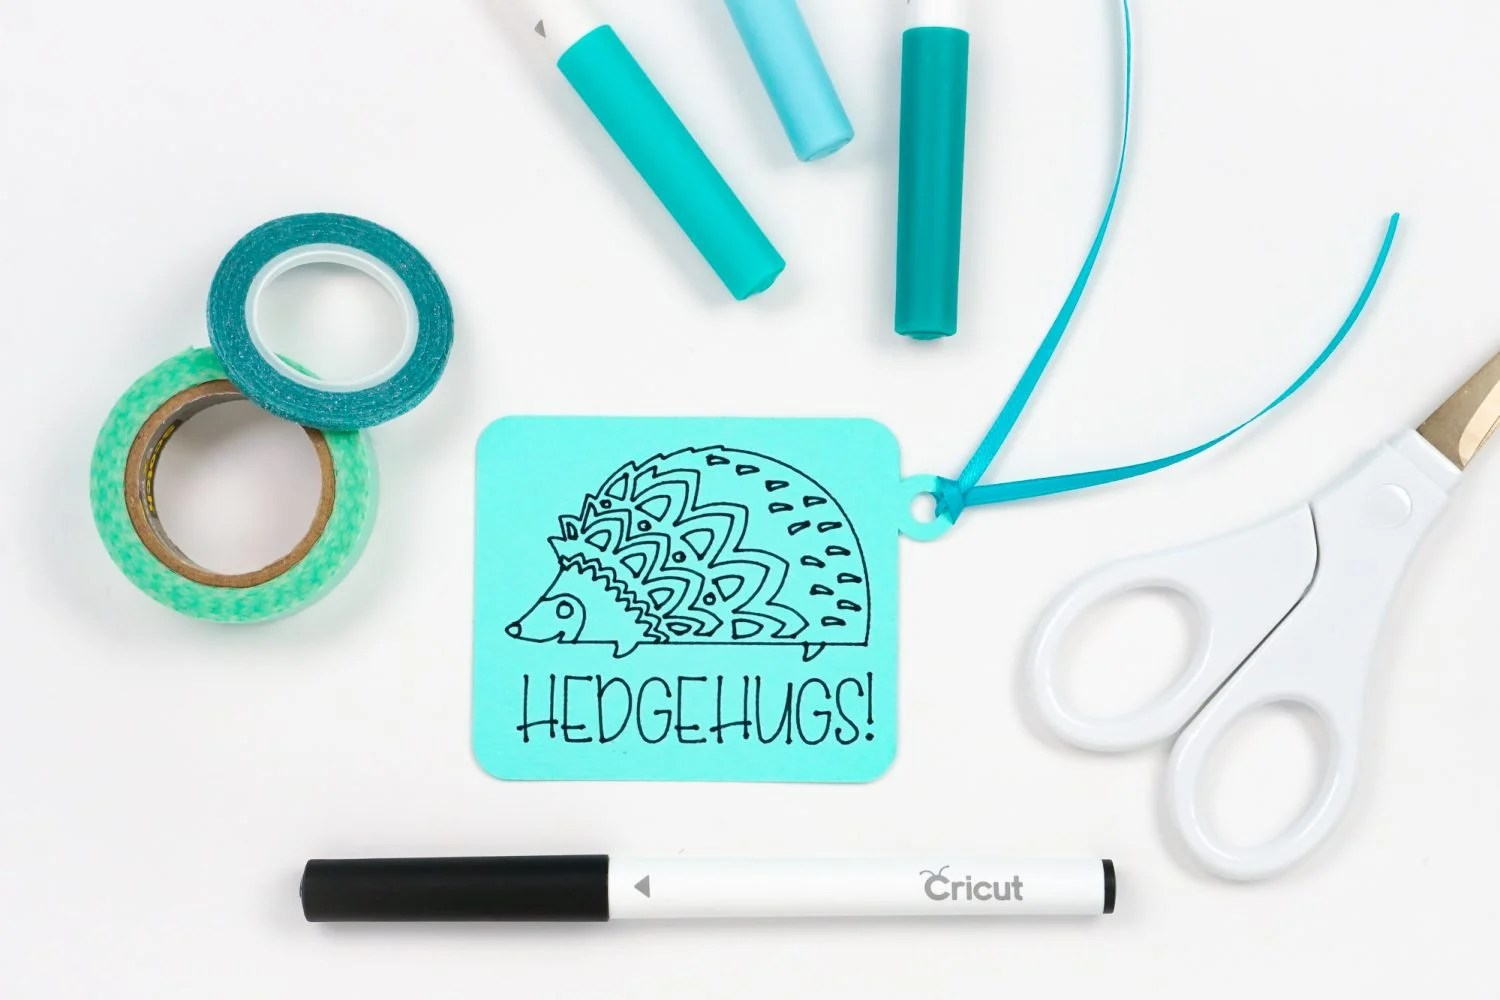 Hedgehugs tag made with Cricut, cardstock, and pen